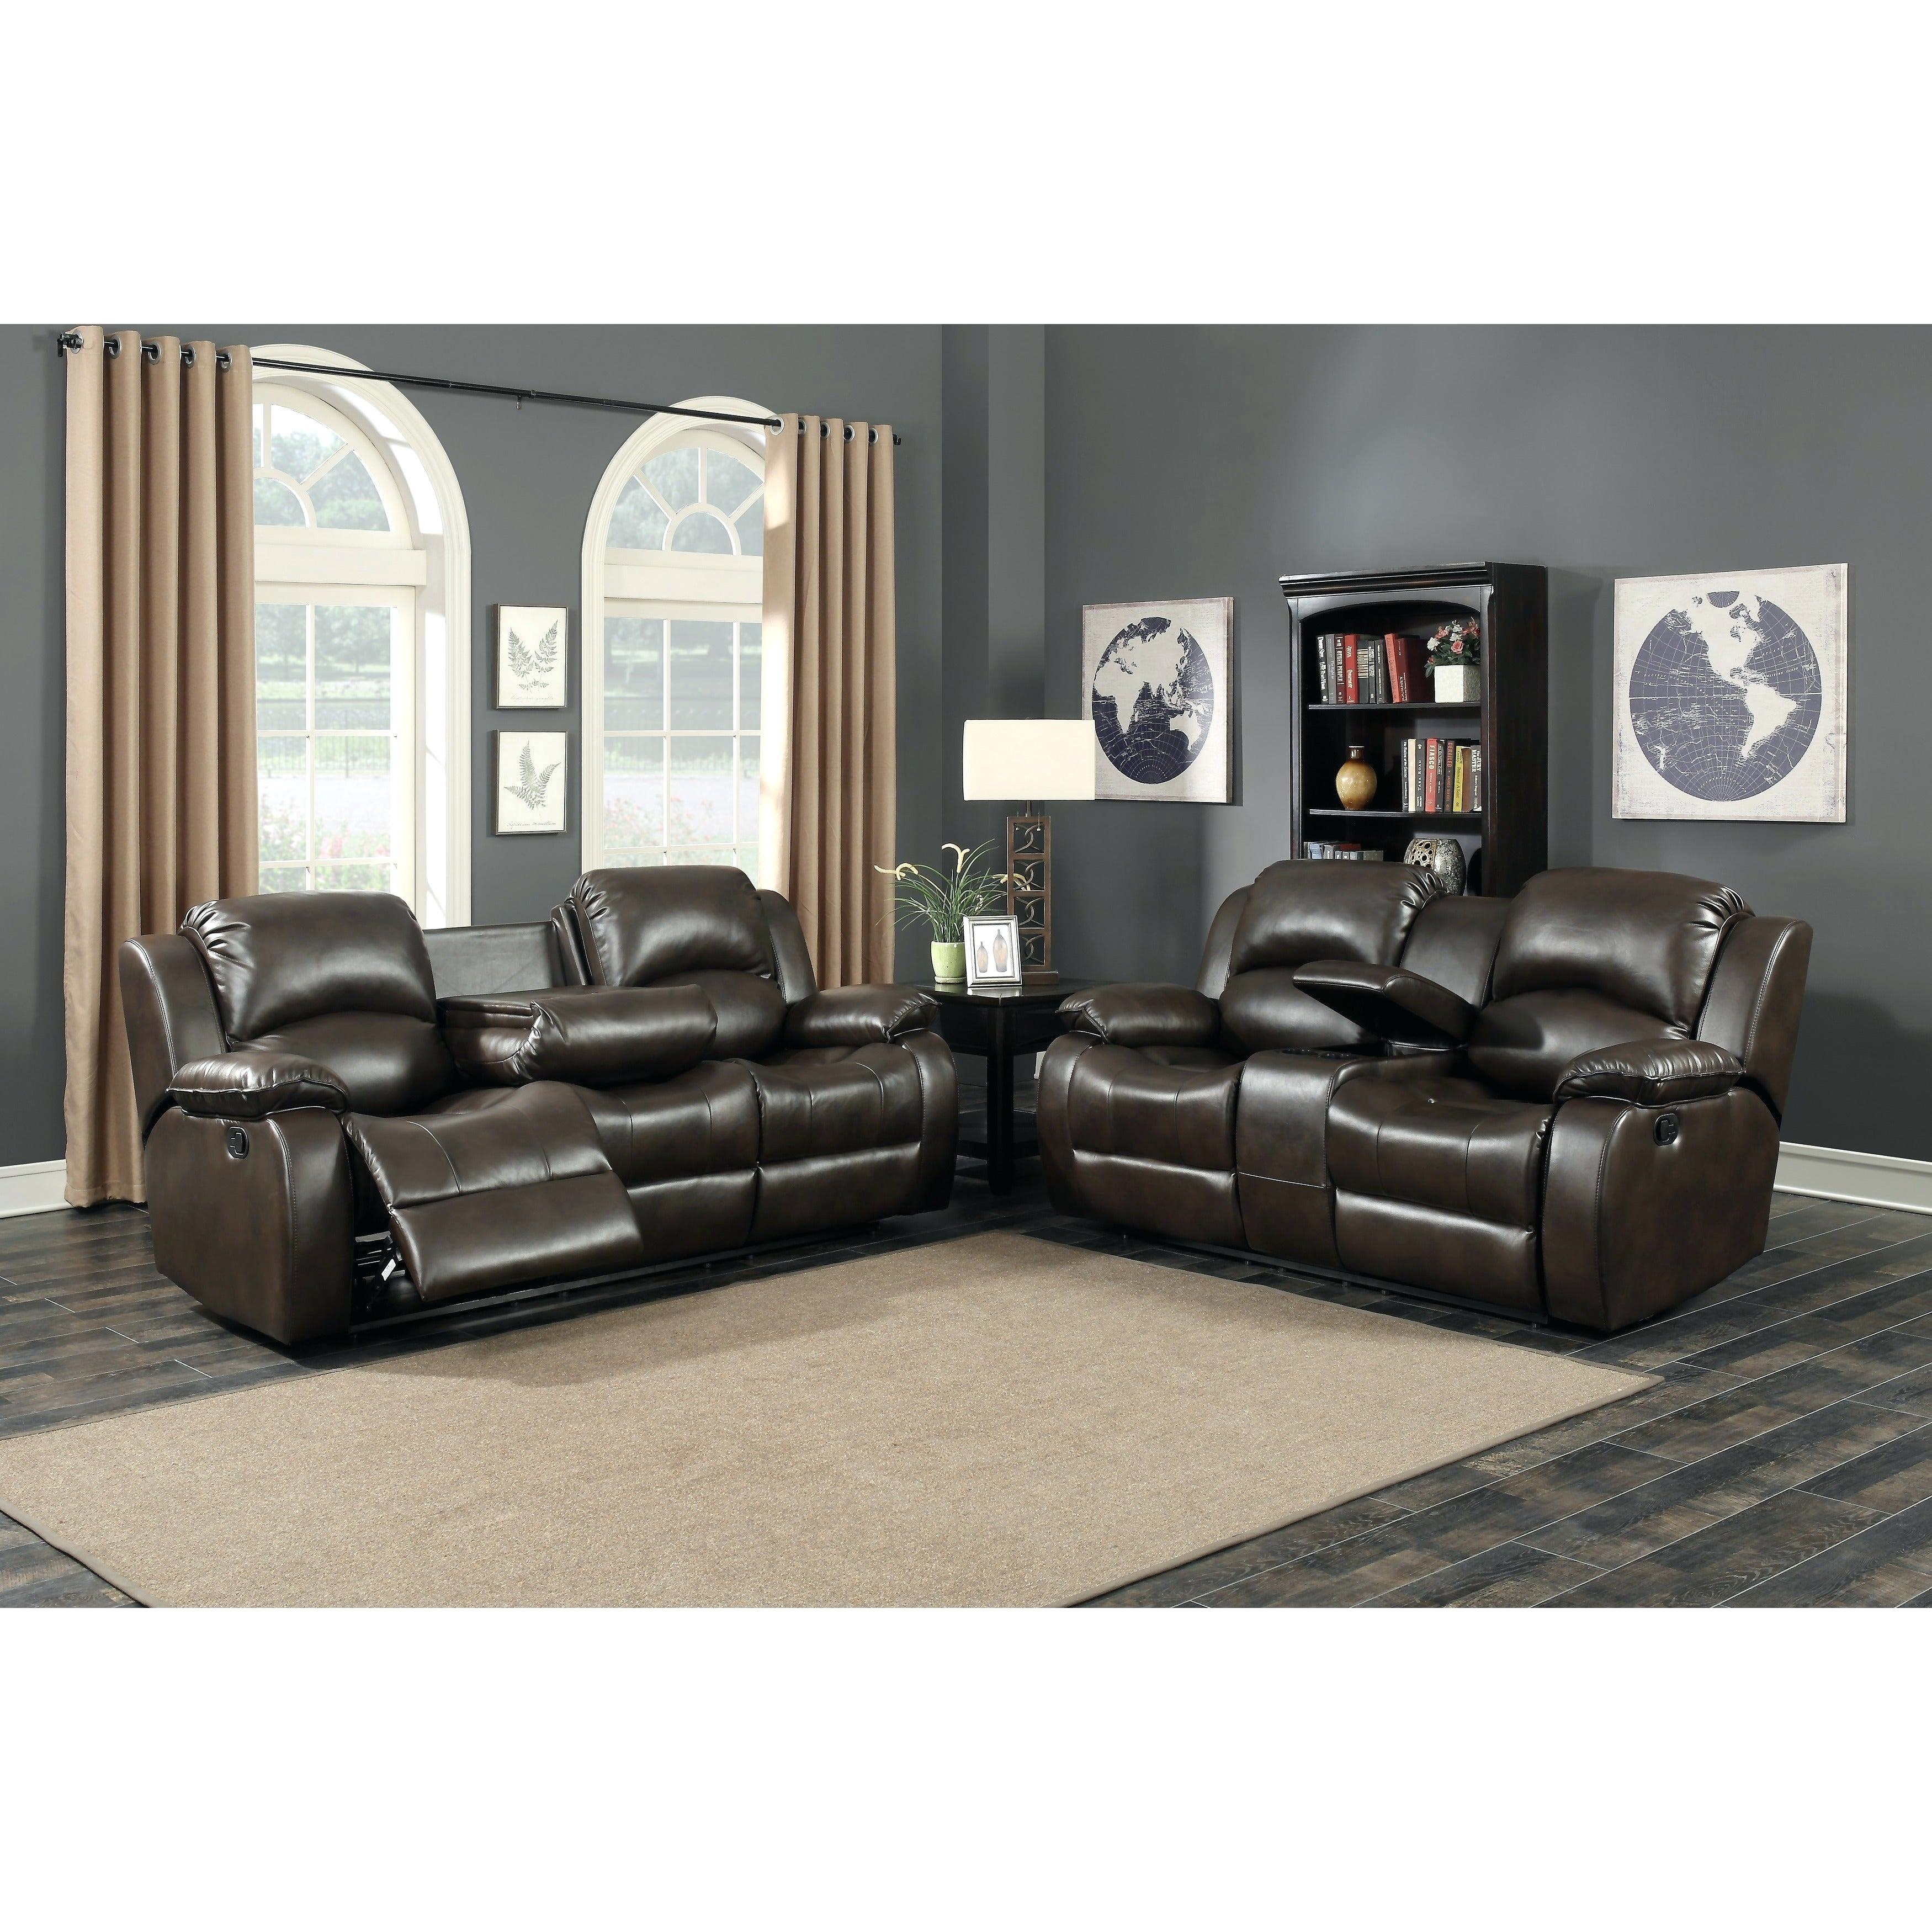 Cheap Living Room Sets Furniture Under 200 Webteksite intended for Living Room Sets Under 500